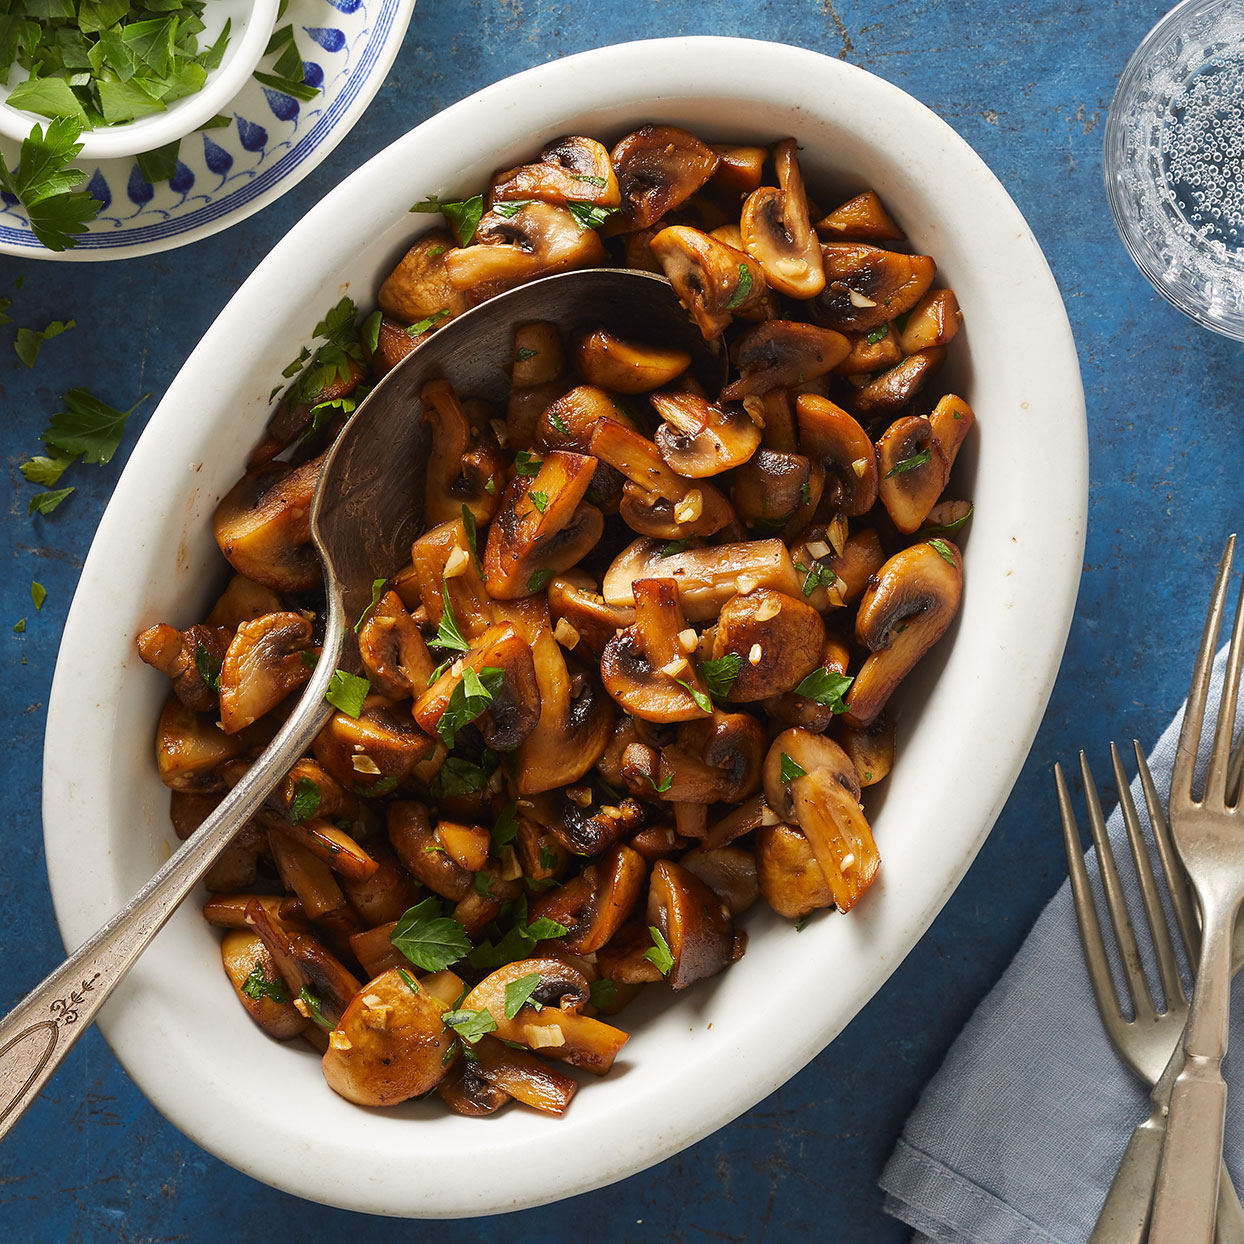 Enjoy these savory mushrooms as a topping for steak or burgers, or on their own as a rich umami side dish.Source: EatingWell.com, March 2020